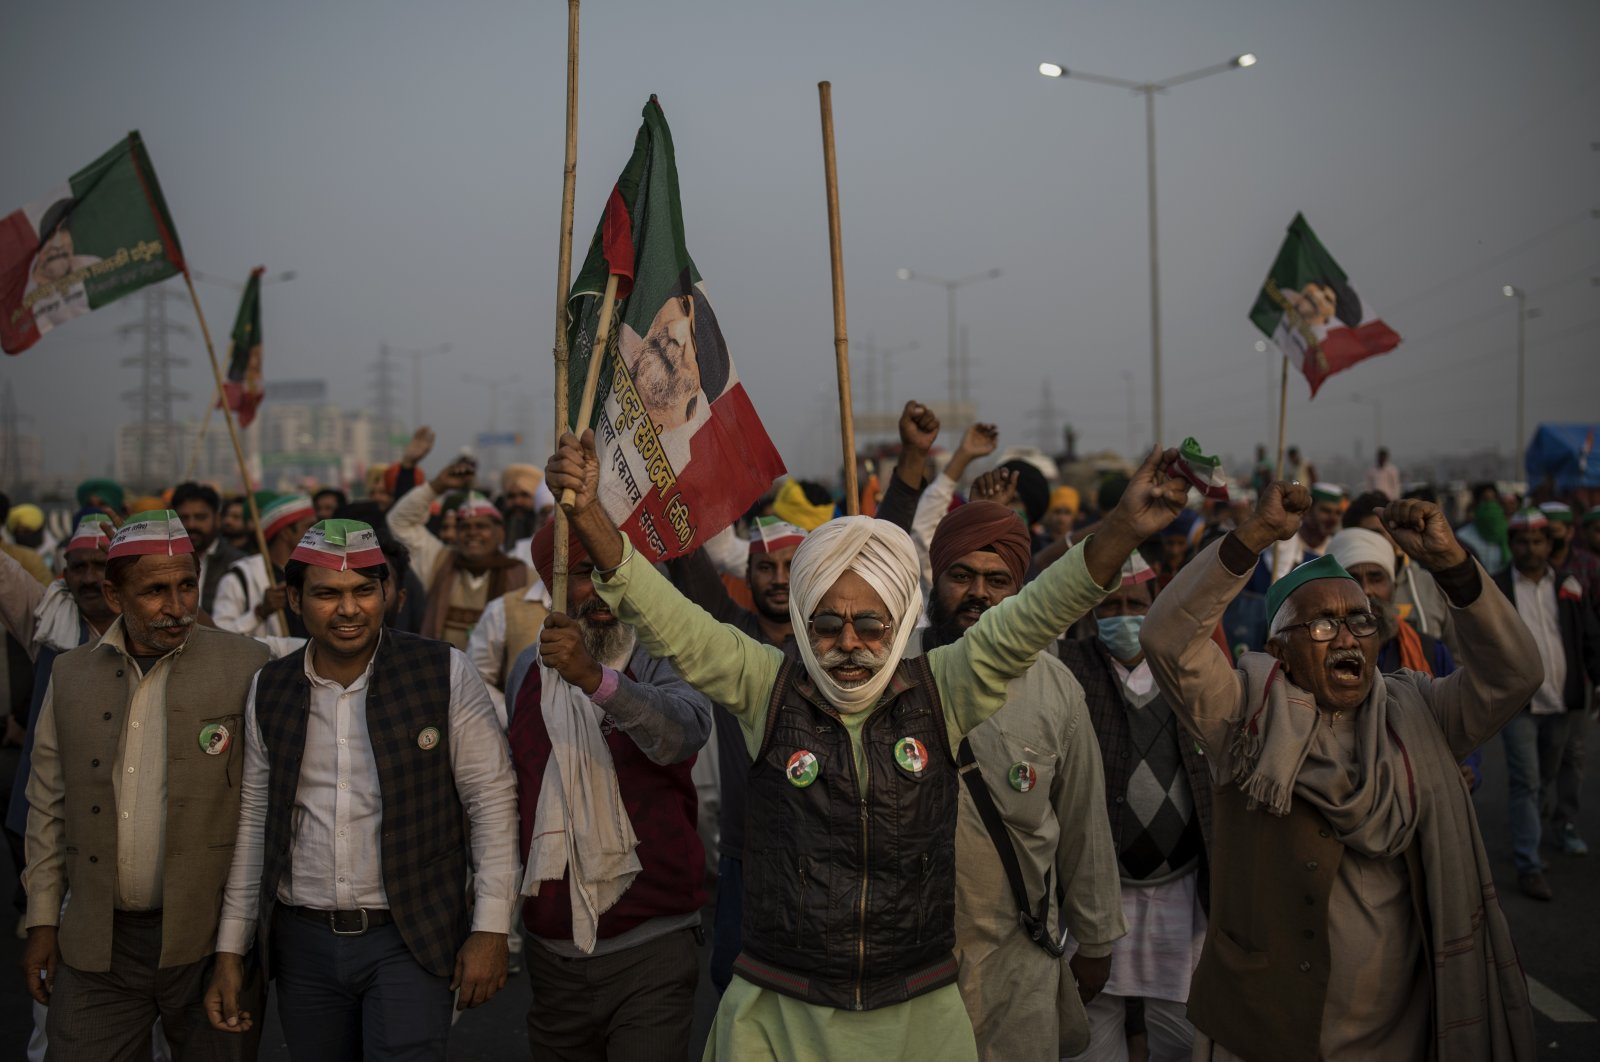 Indian farmers shout slogans as they block a major highway during a protest against new farm laws at the Delhi-Uttar Pradesh state border, India, Dec. 5, 2020. (AP Photo)